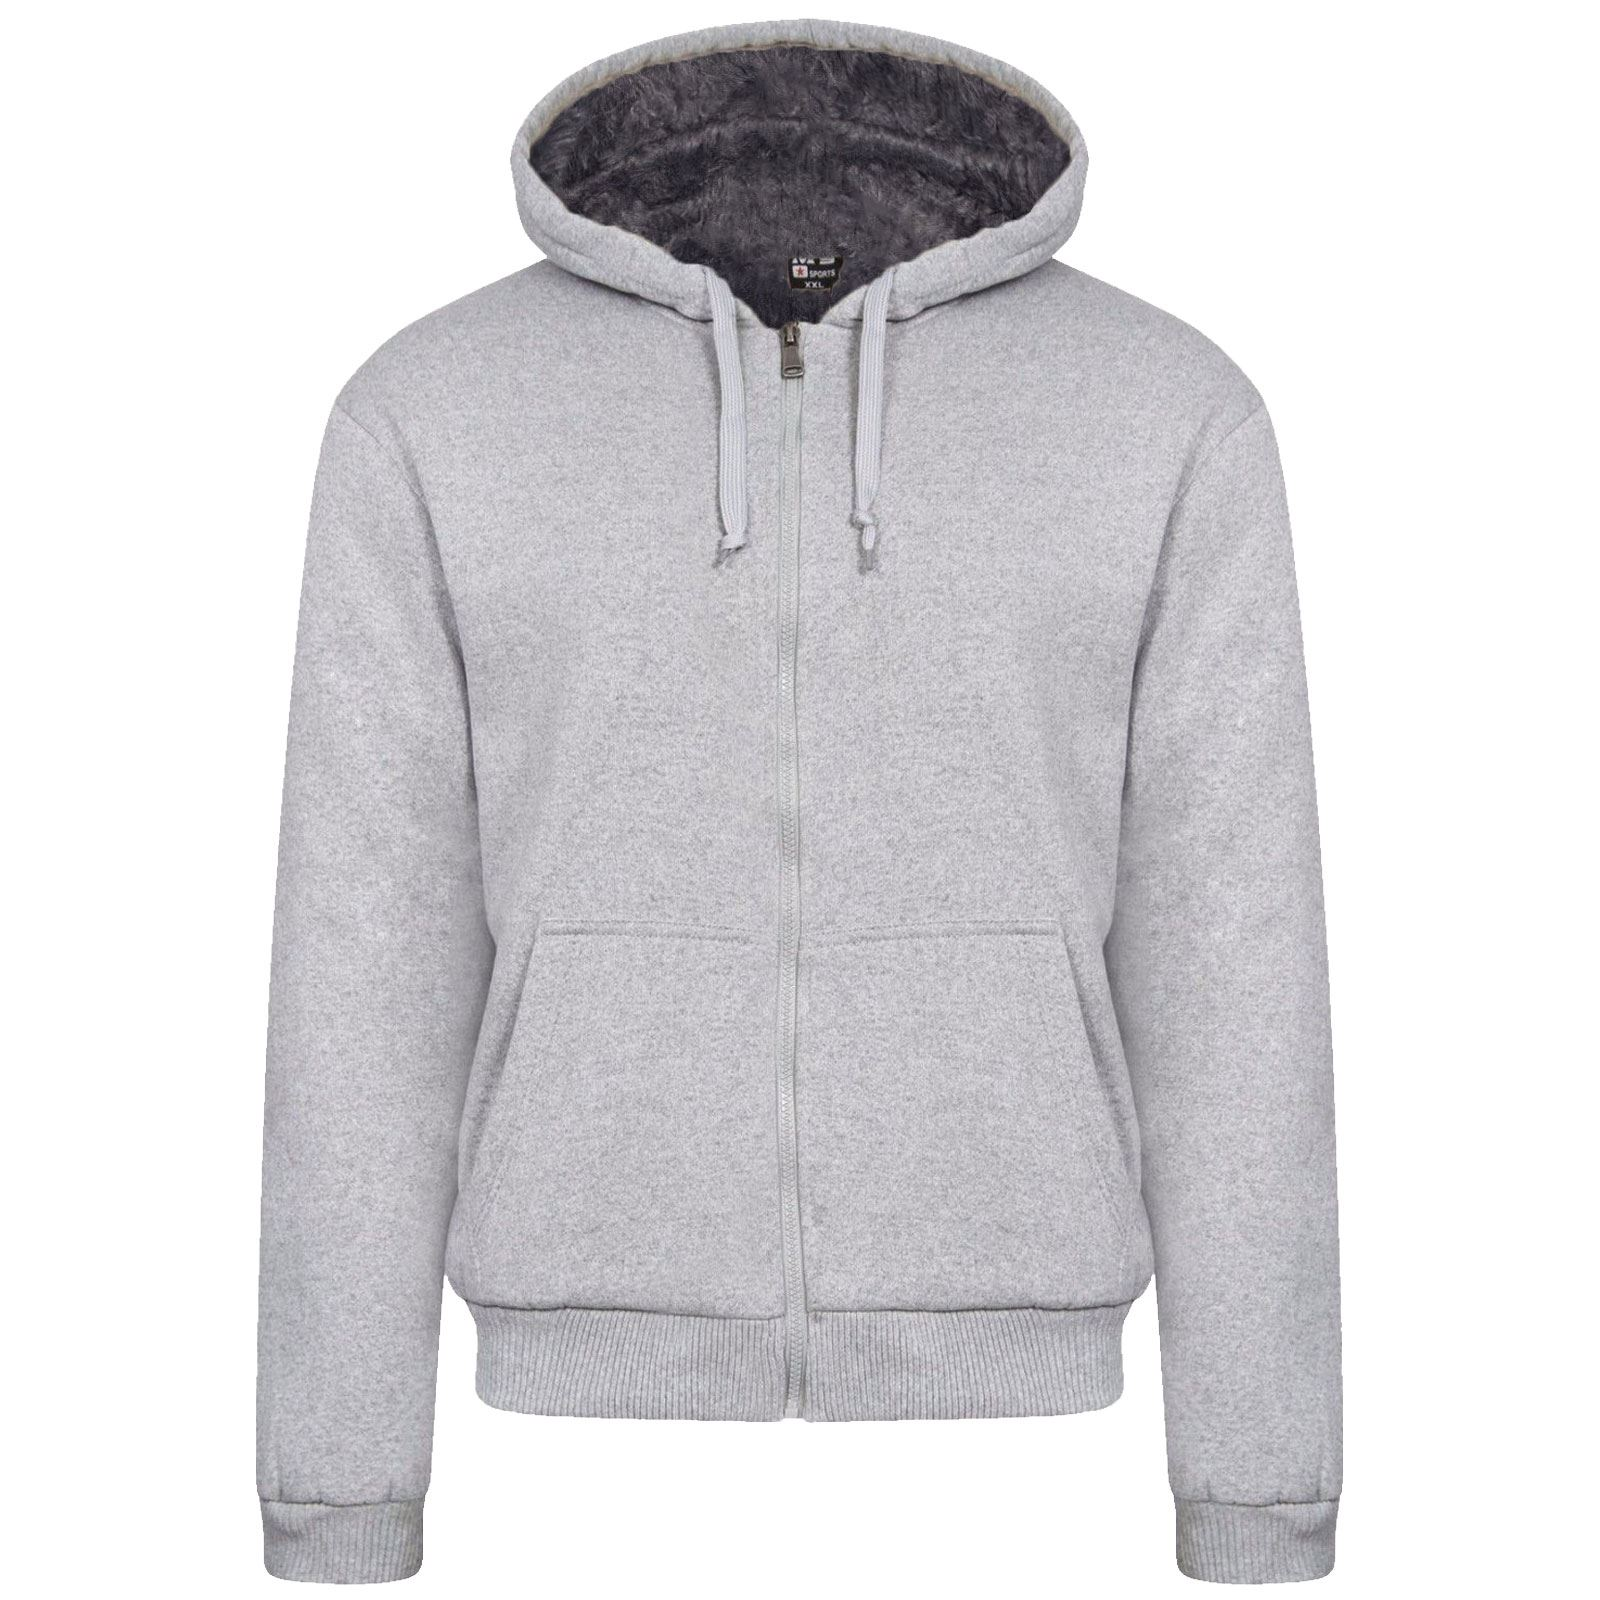 New Mens Fur Lined Winter Plain Hoodie Jacket Thick Sherpa ...